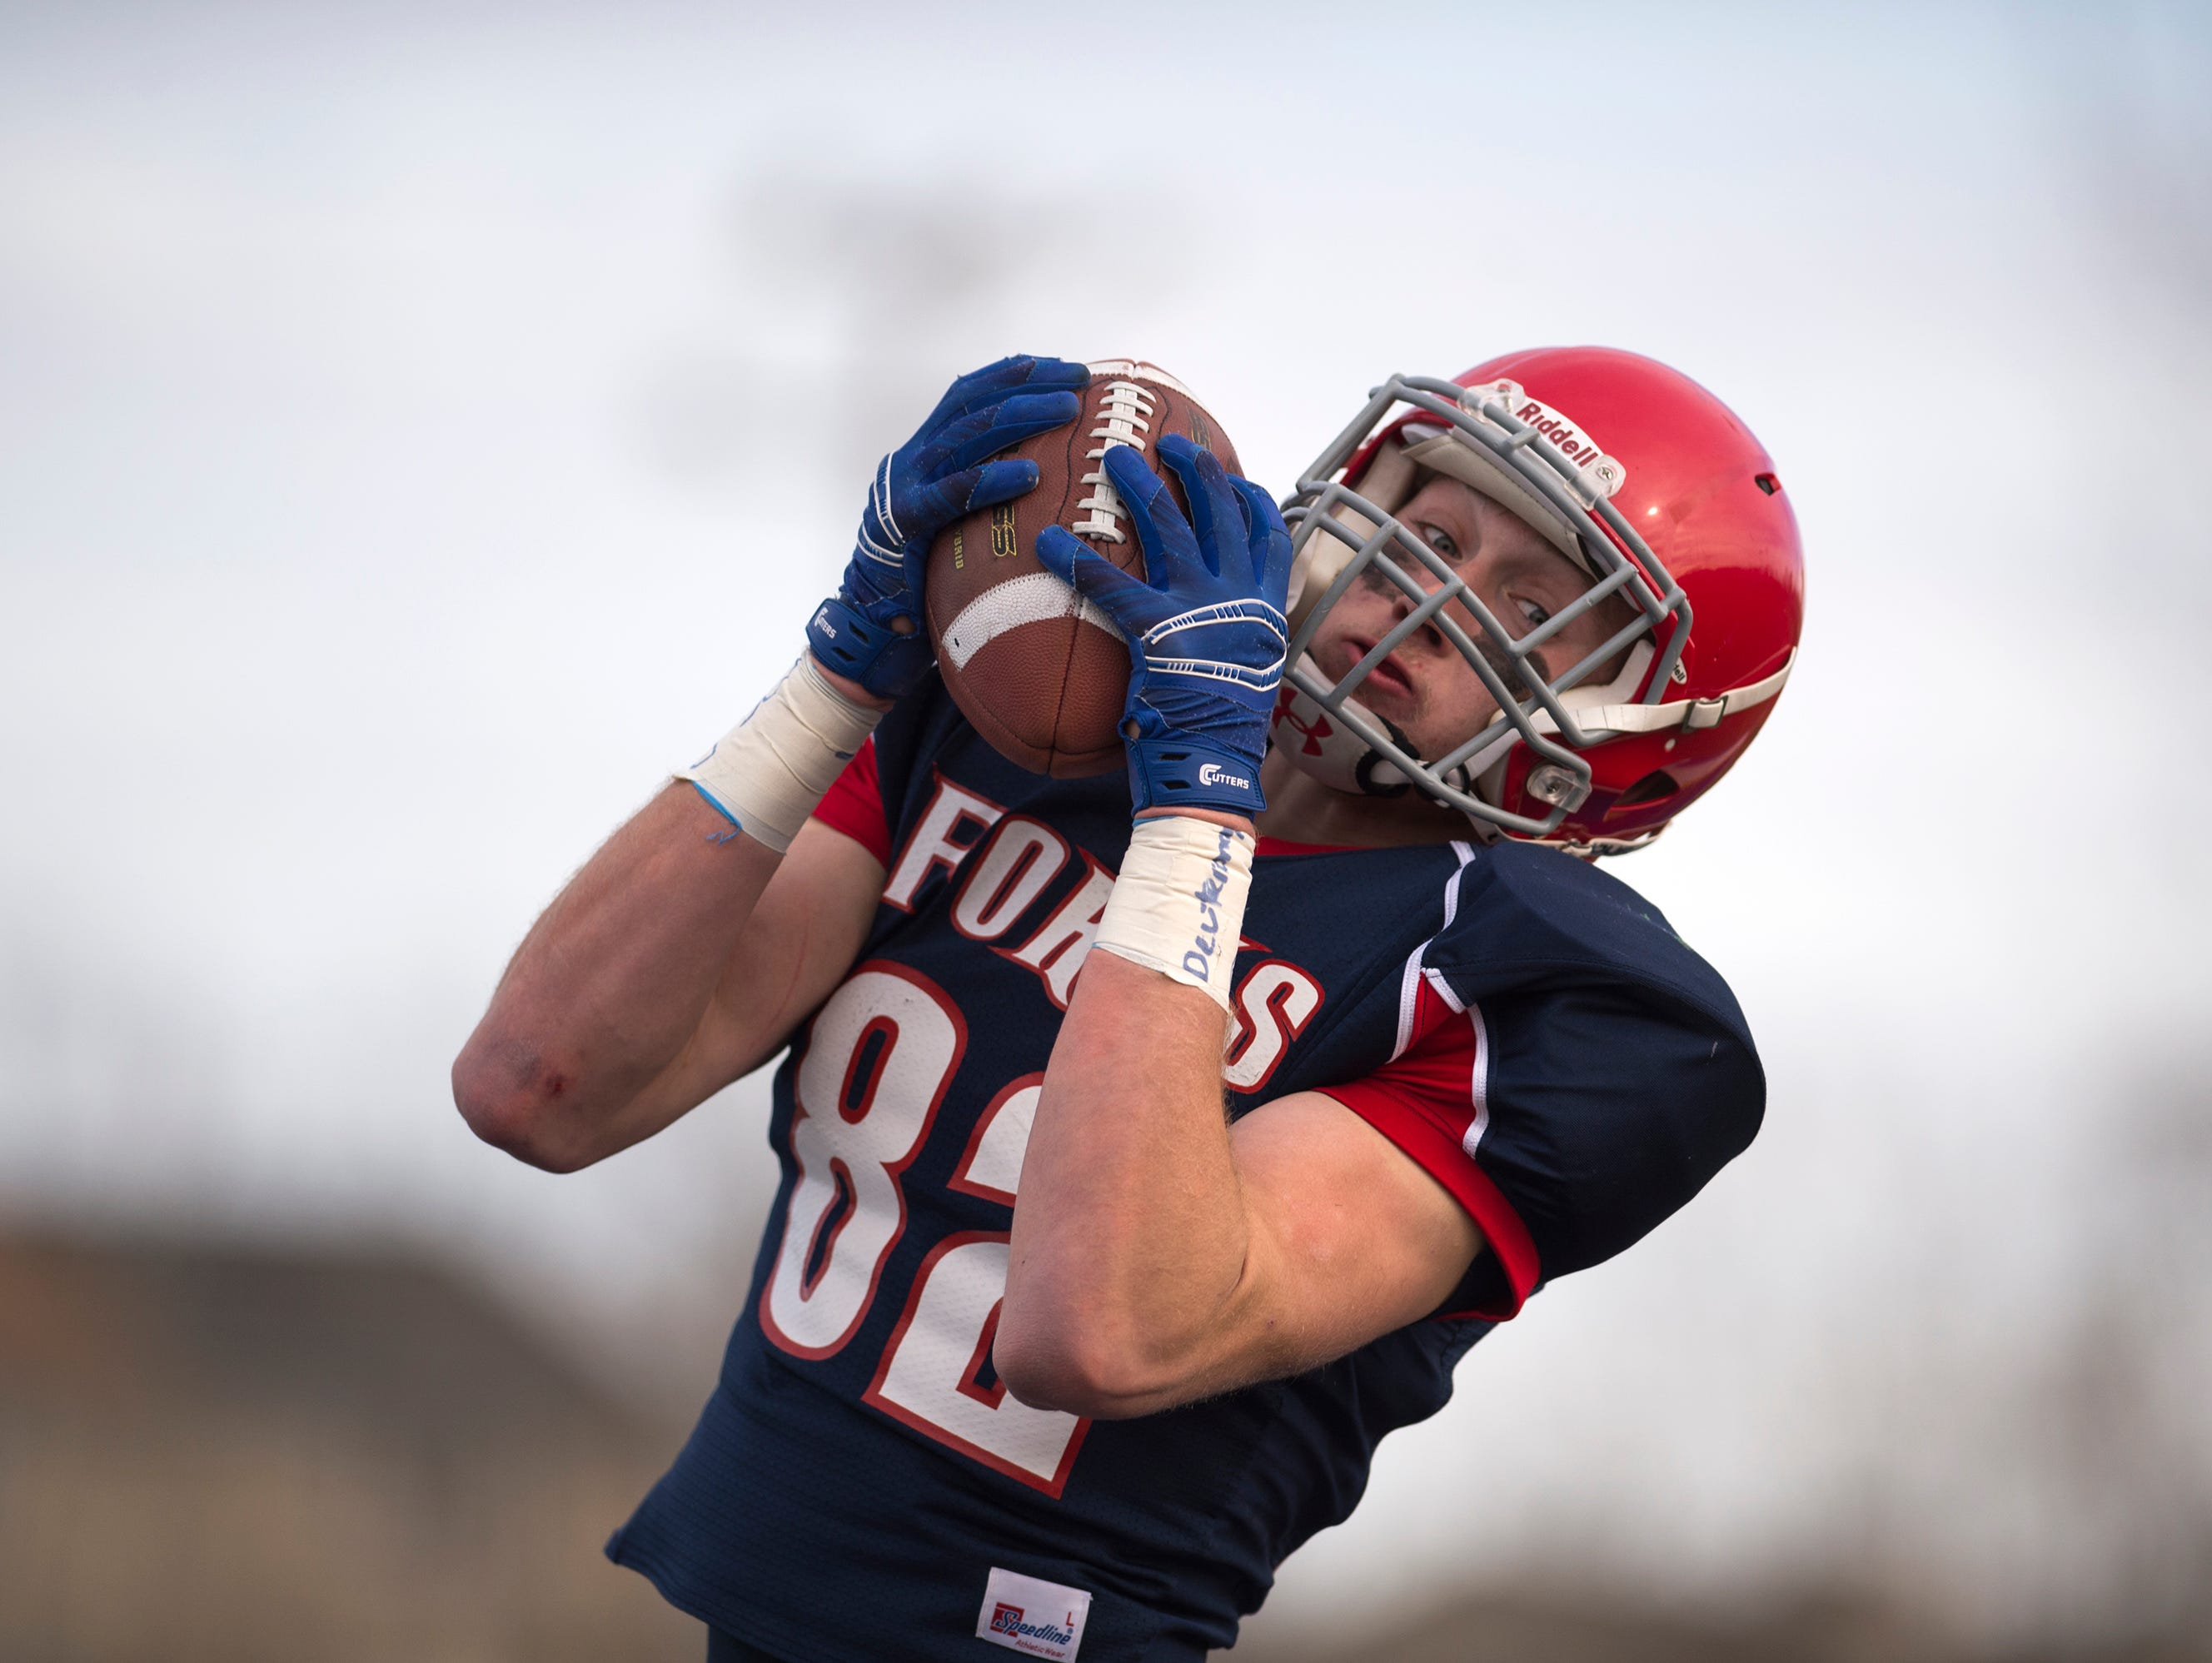 Chenango Forks tight end Trevor Borchardt hauls in a pass for a touchdown during the first quarter of the Class C state playoff semifinal against Bath on Saturday, Nov. 21, 2015.